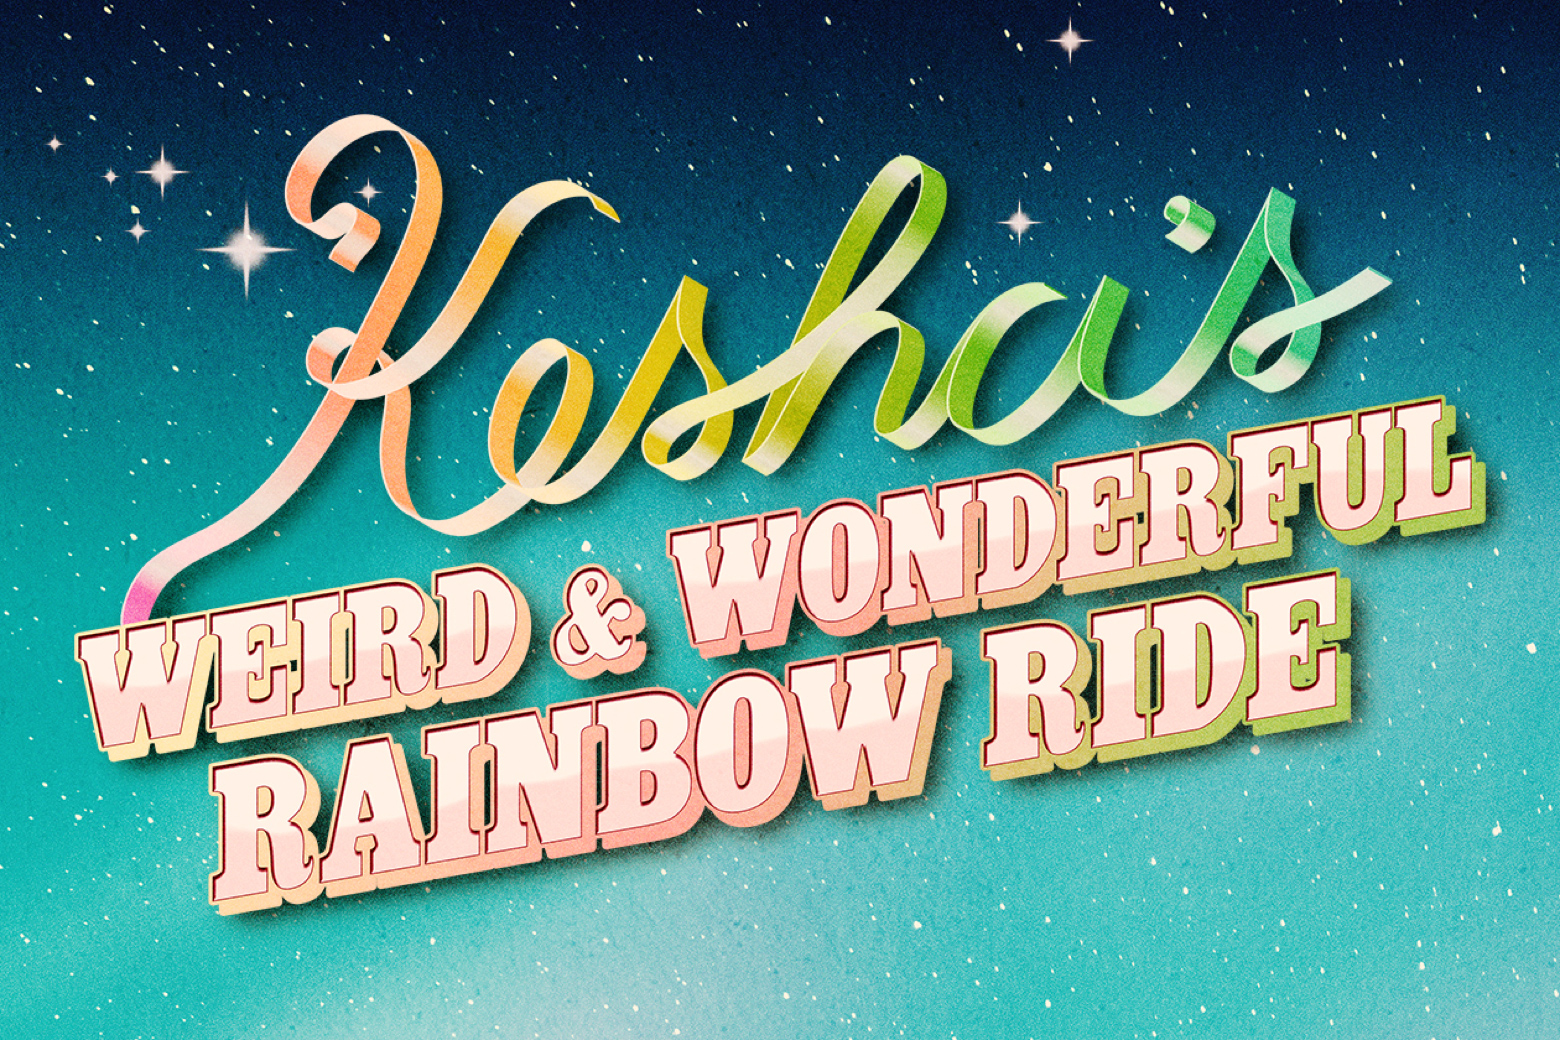 Kesha's Weird & Wonderful Rainbow Ride